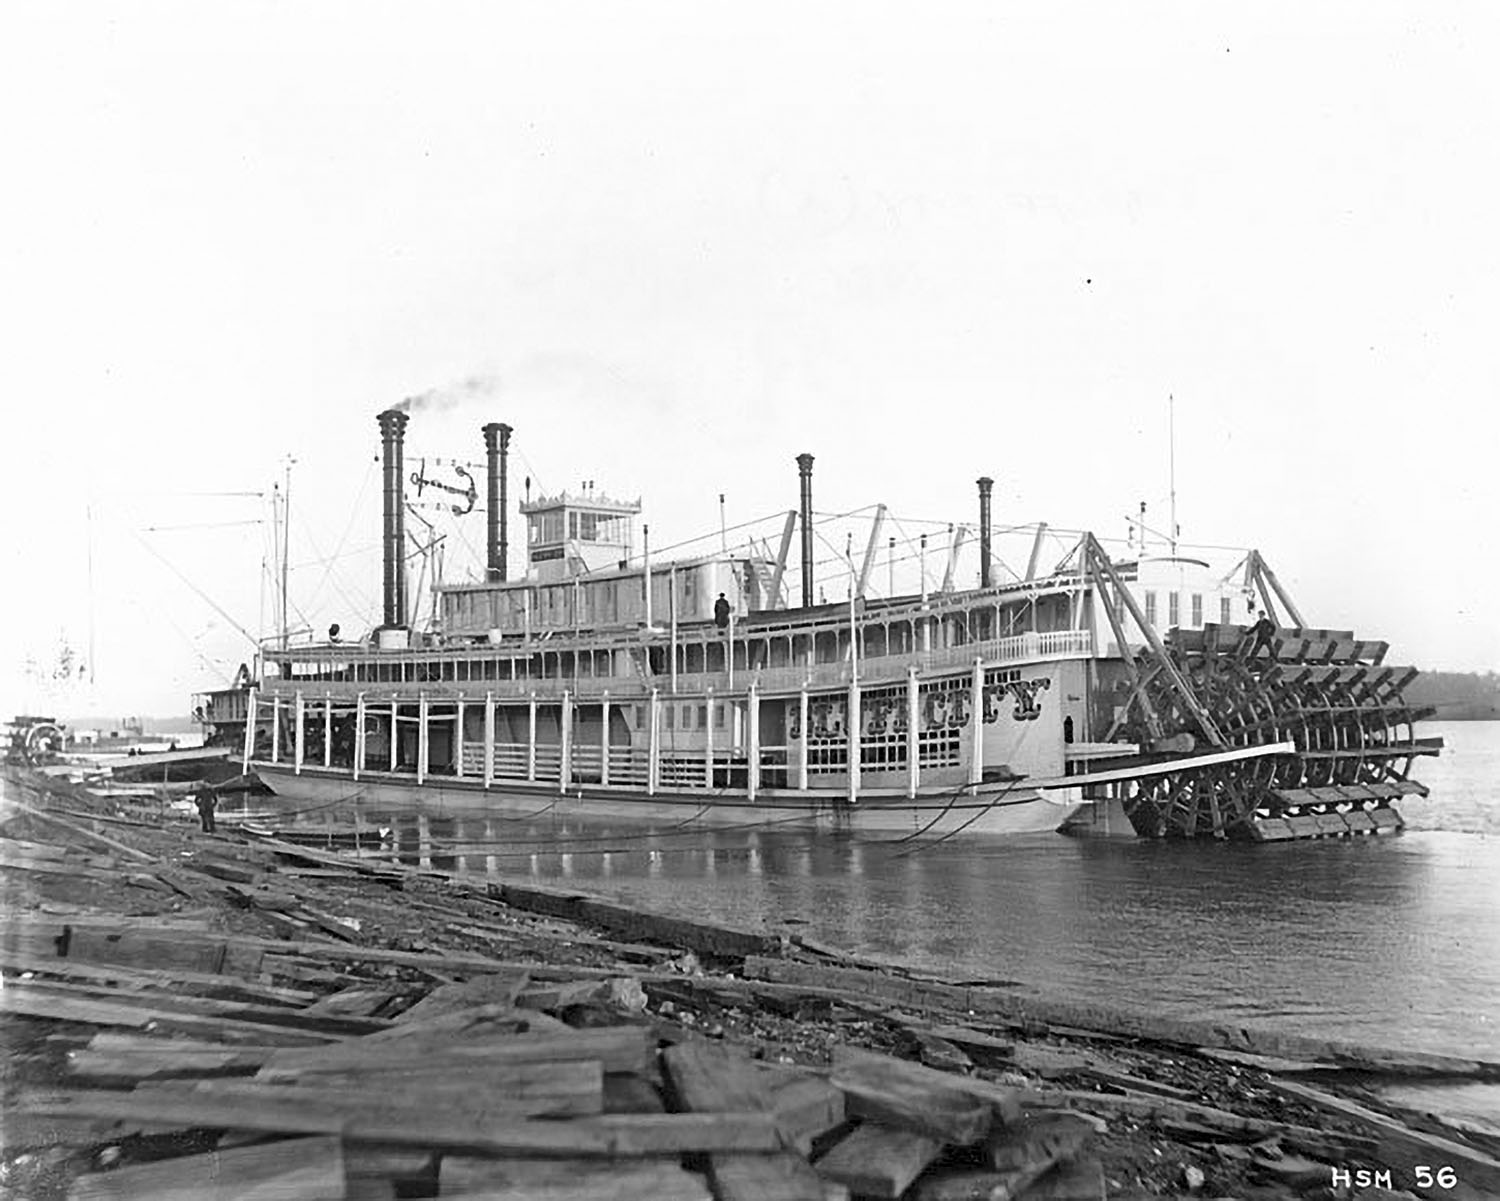 The Bluff City as a new boat at the Howard Shipyard in 1896. (Keith Norrington collection)